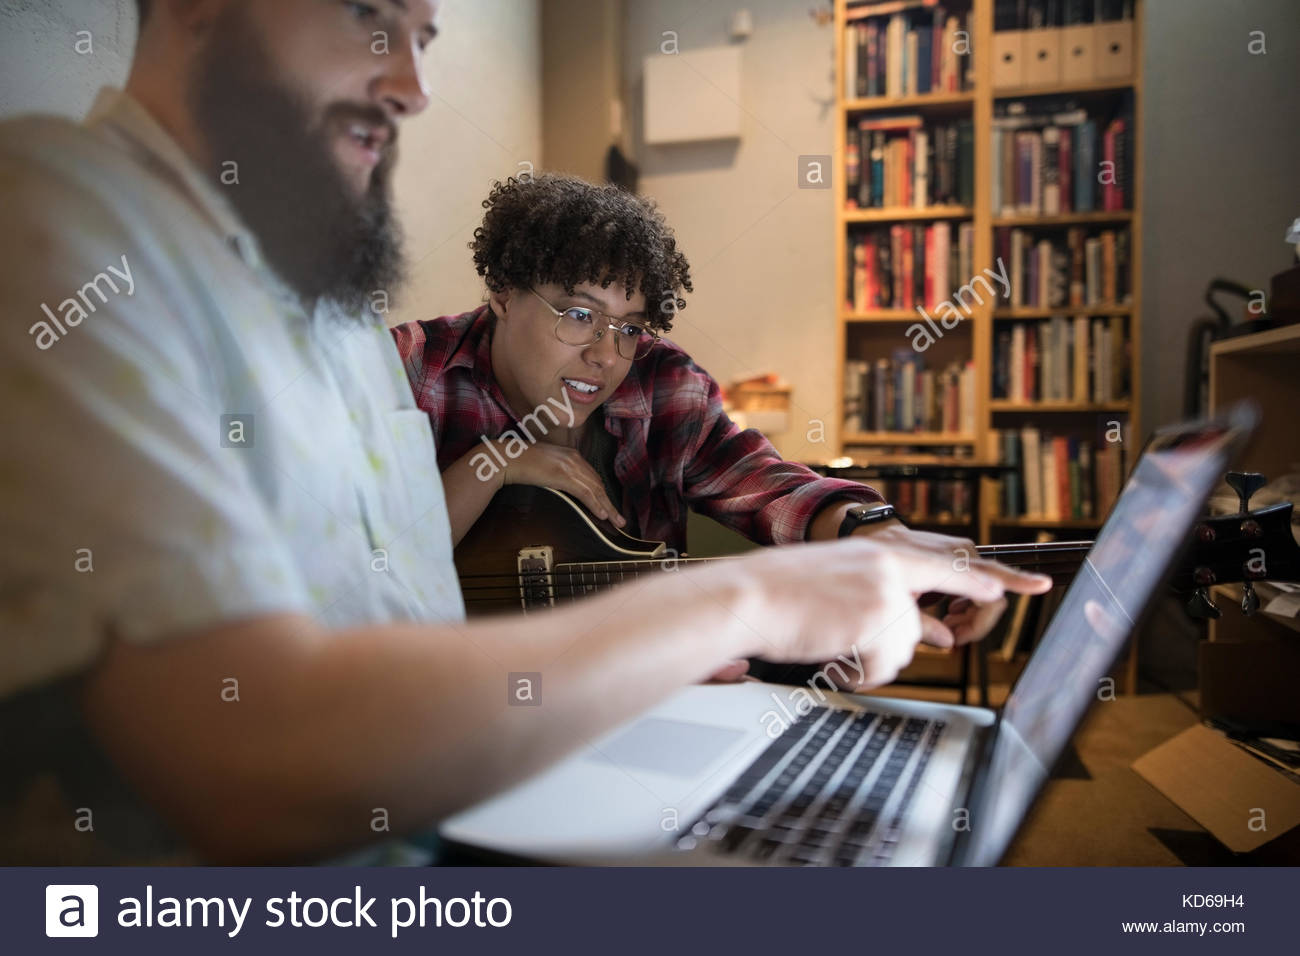 Musicians with guitar writing music at laptop - Stock Image